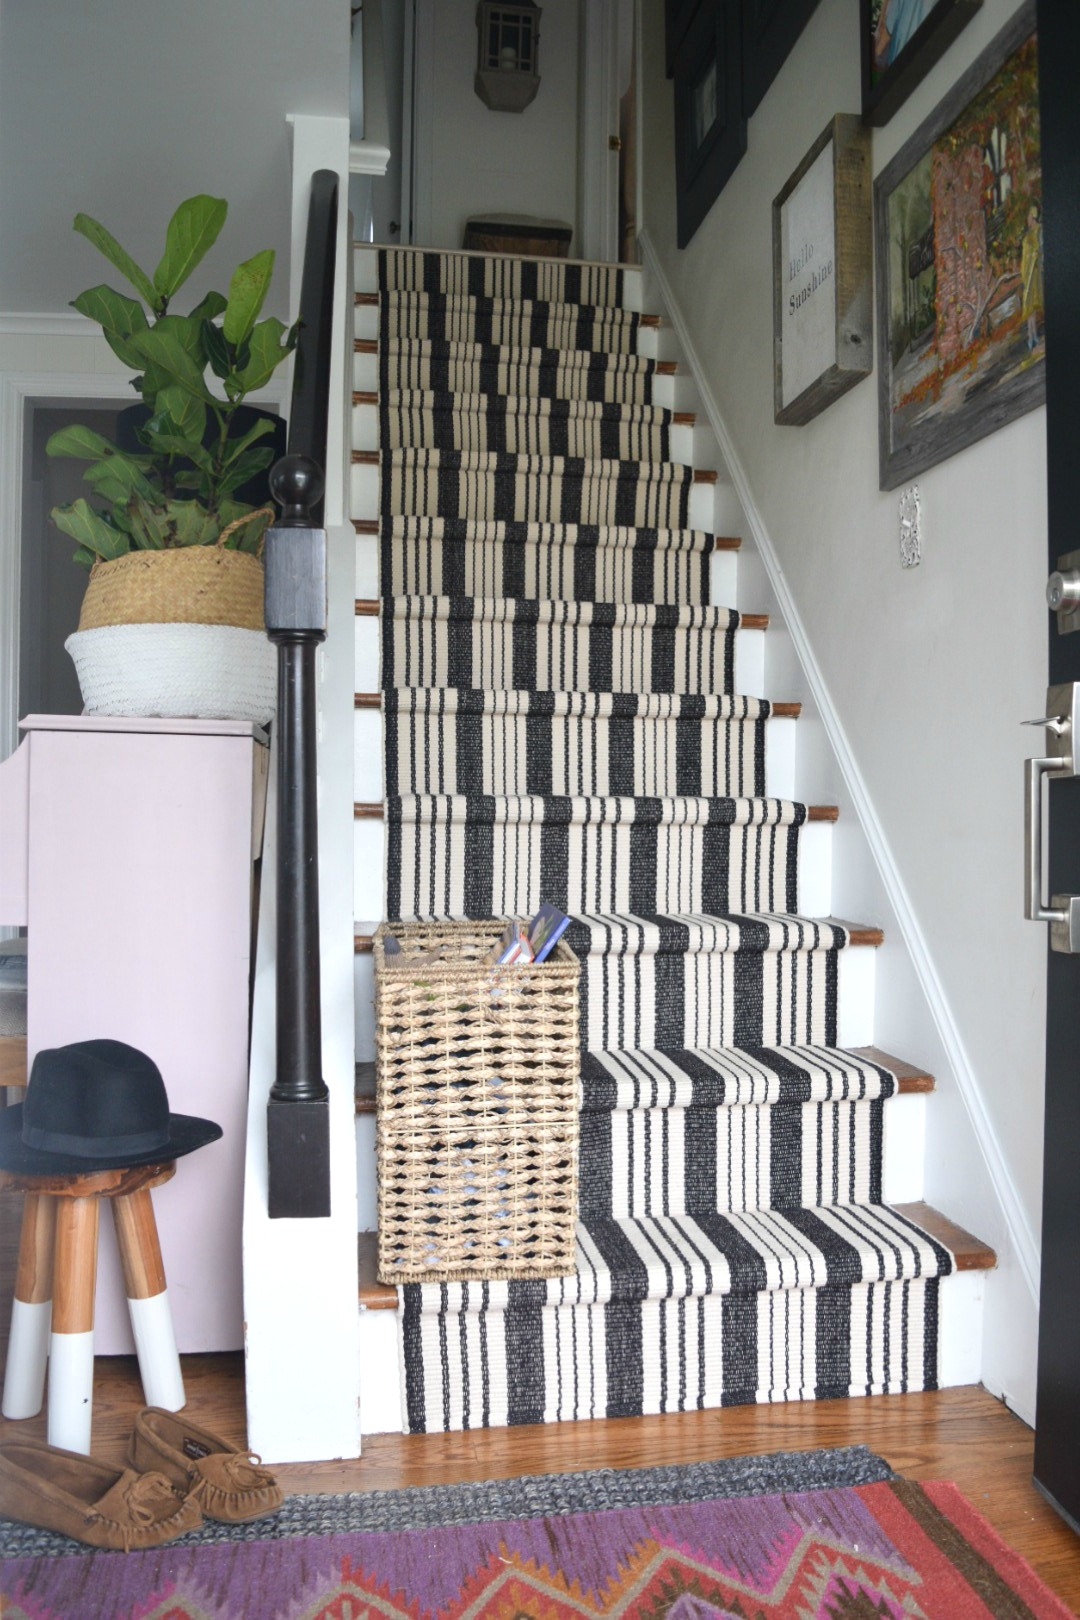 Donu0027t Make The Mistakes We Made Installing A Stair Runner